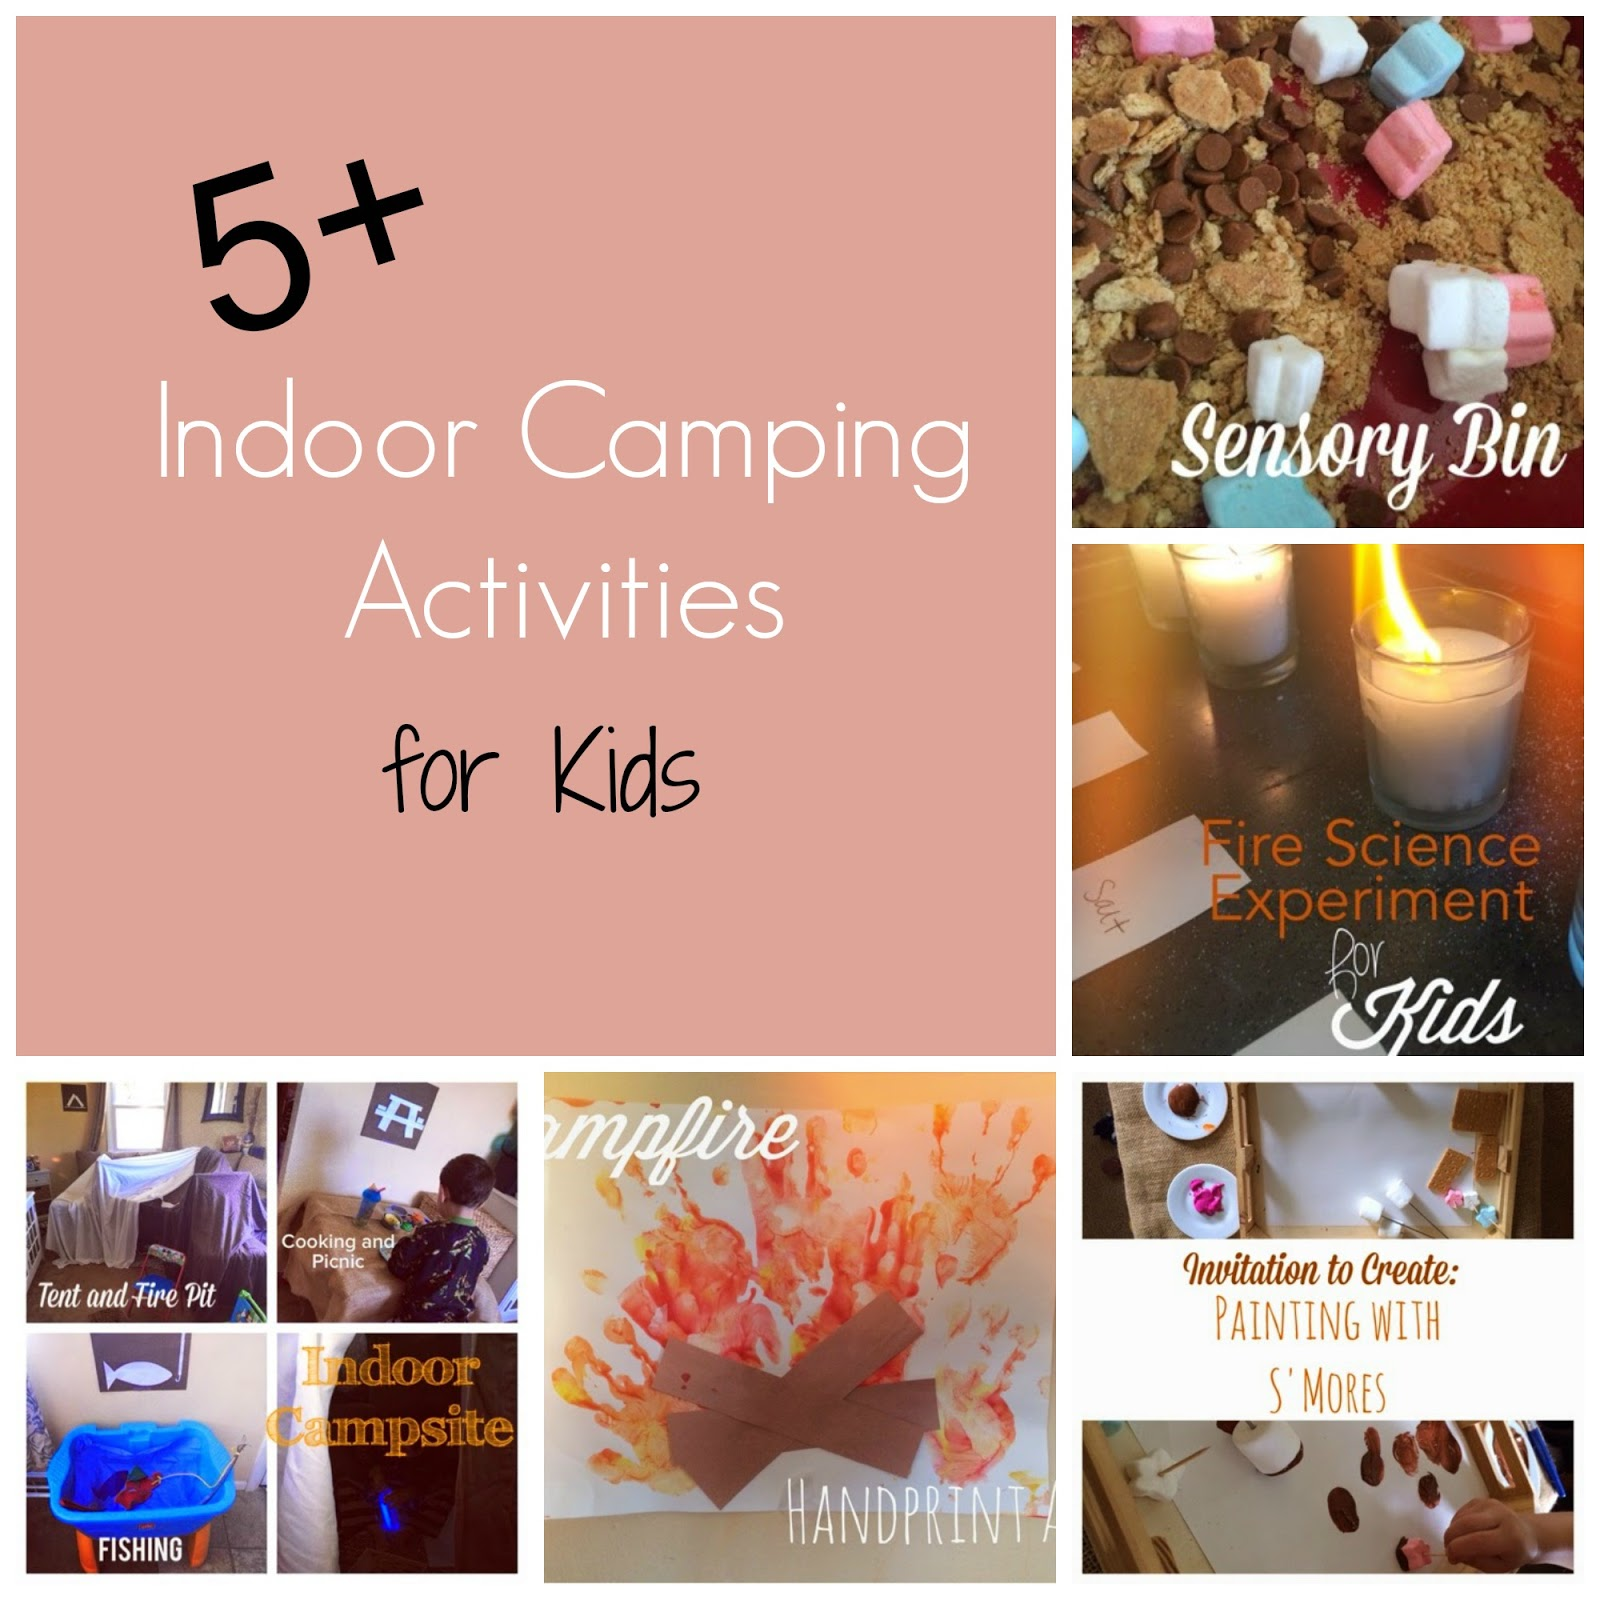 Kids Love To Pretend Have An Indoor Camping Trip Complete With Art Projects